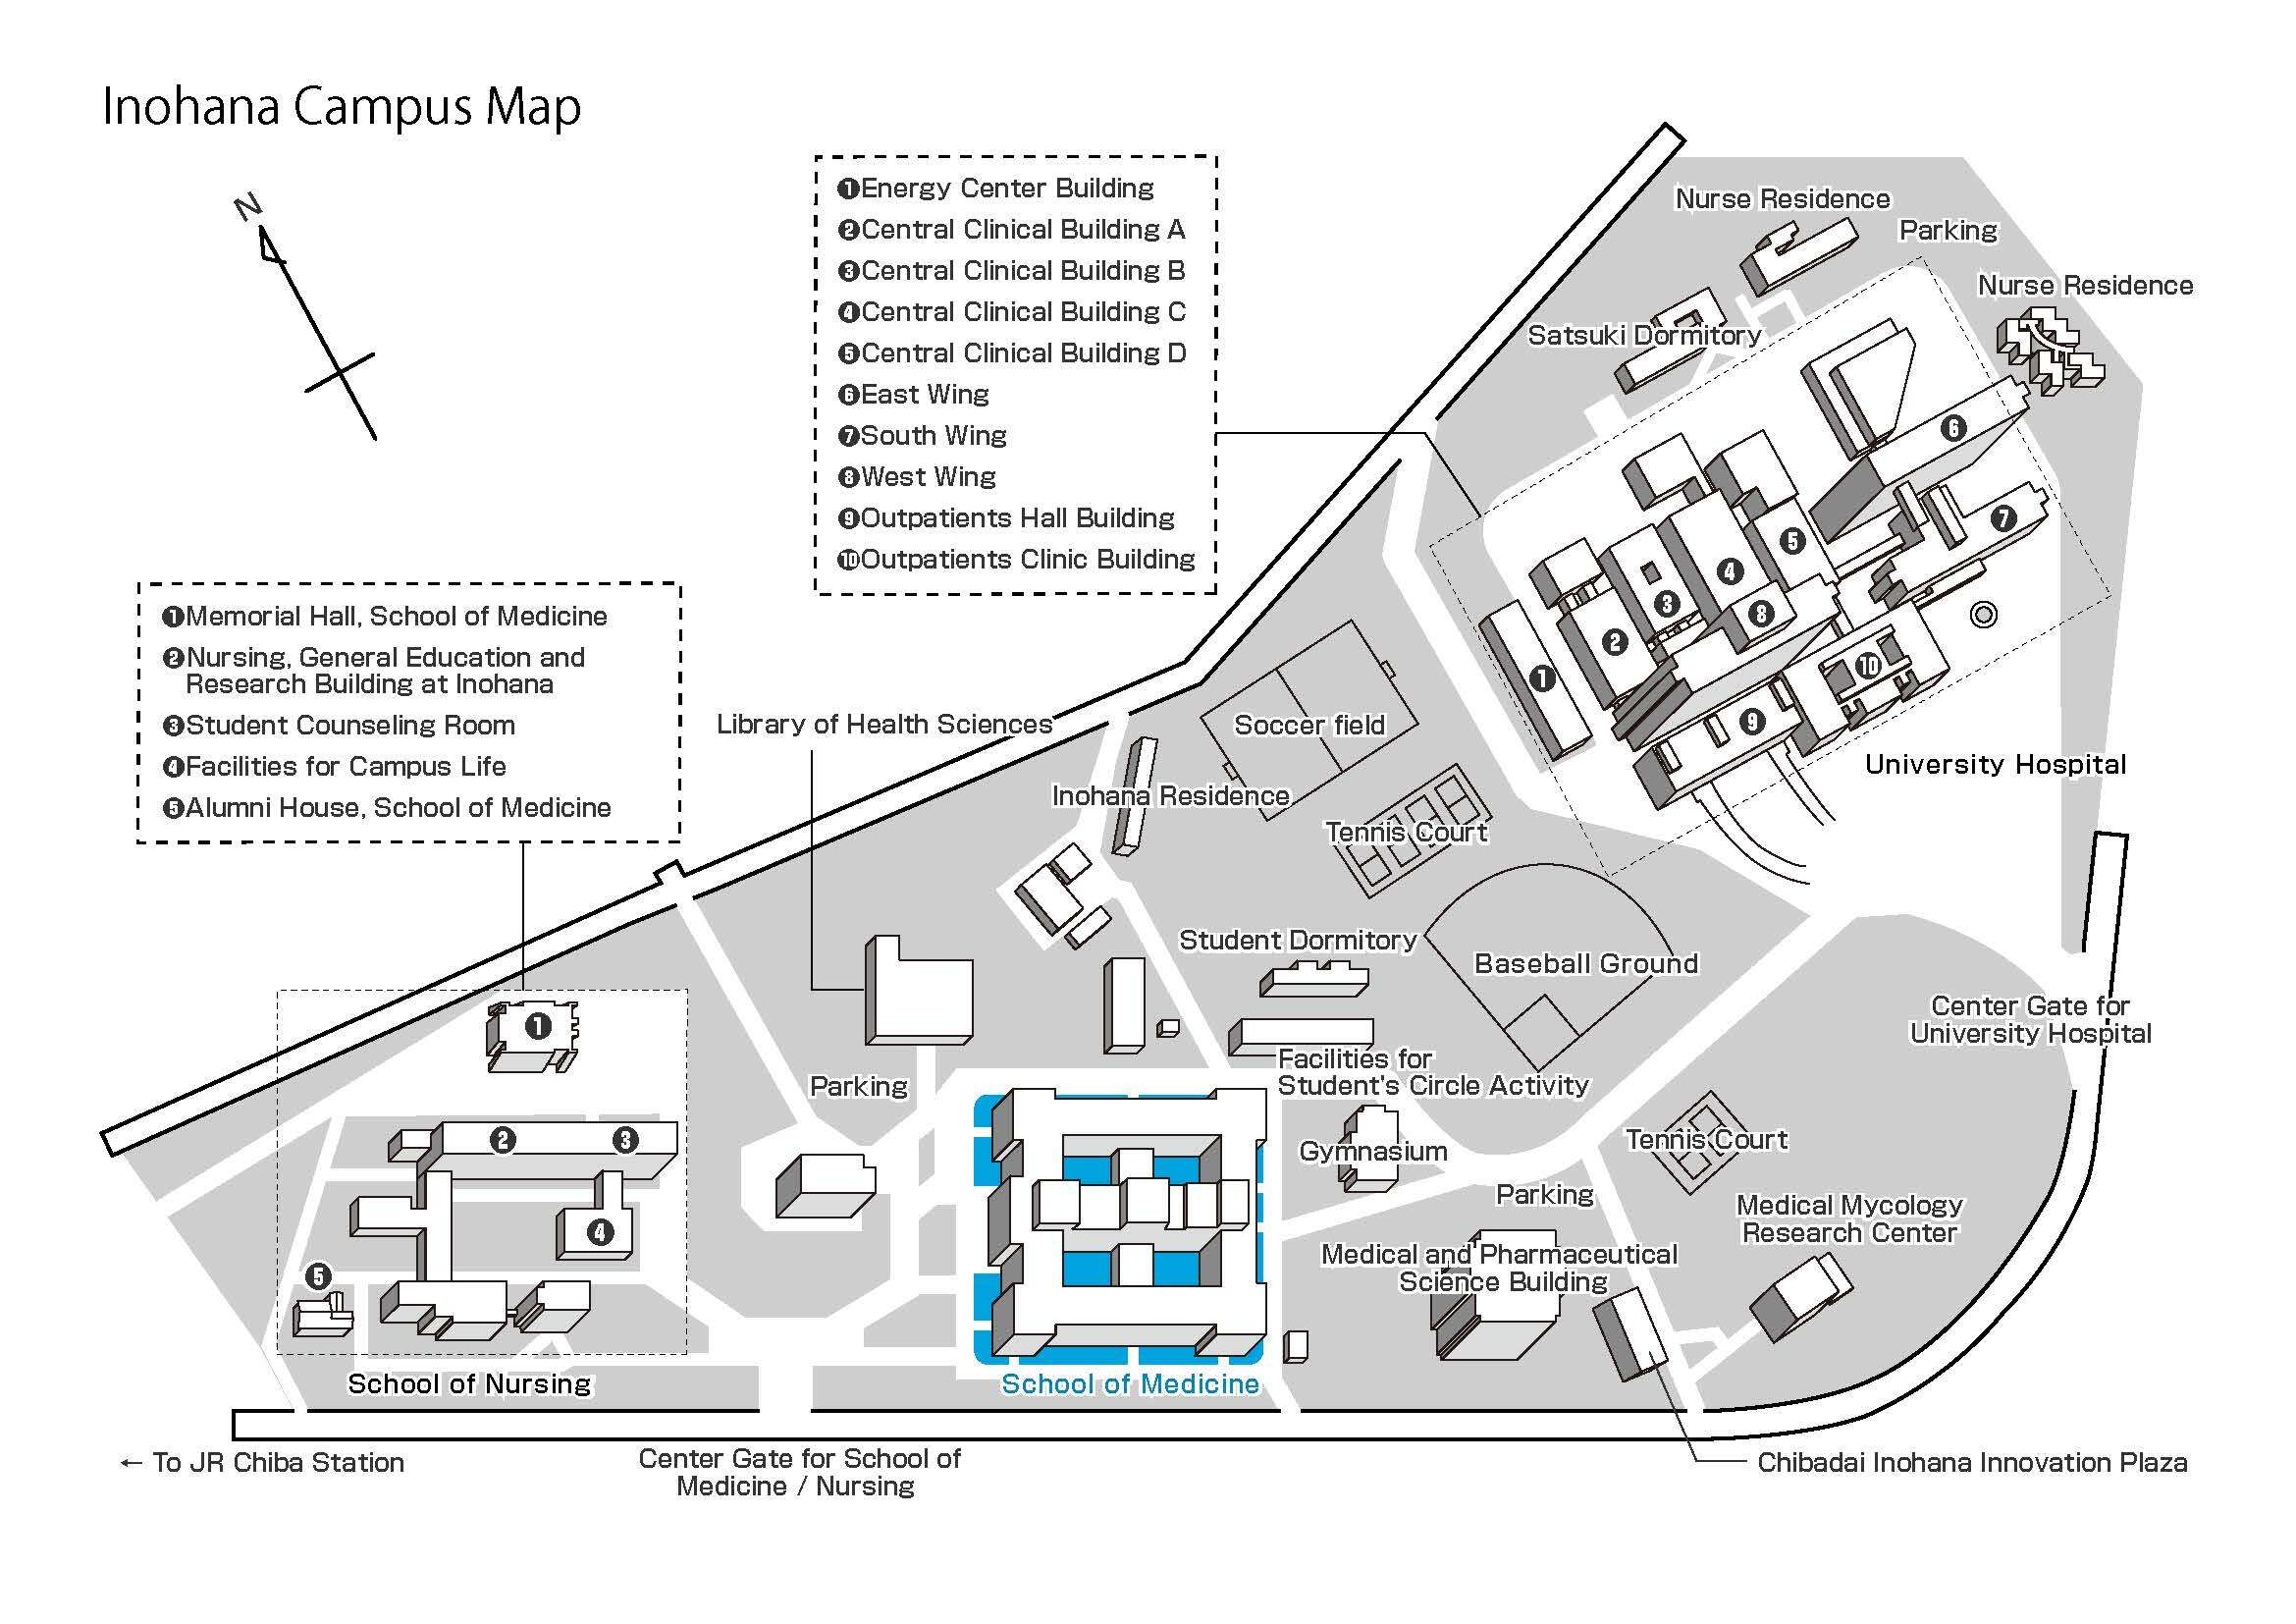 map_campus_inohana.jpg